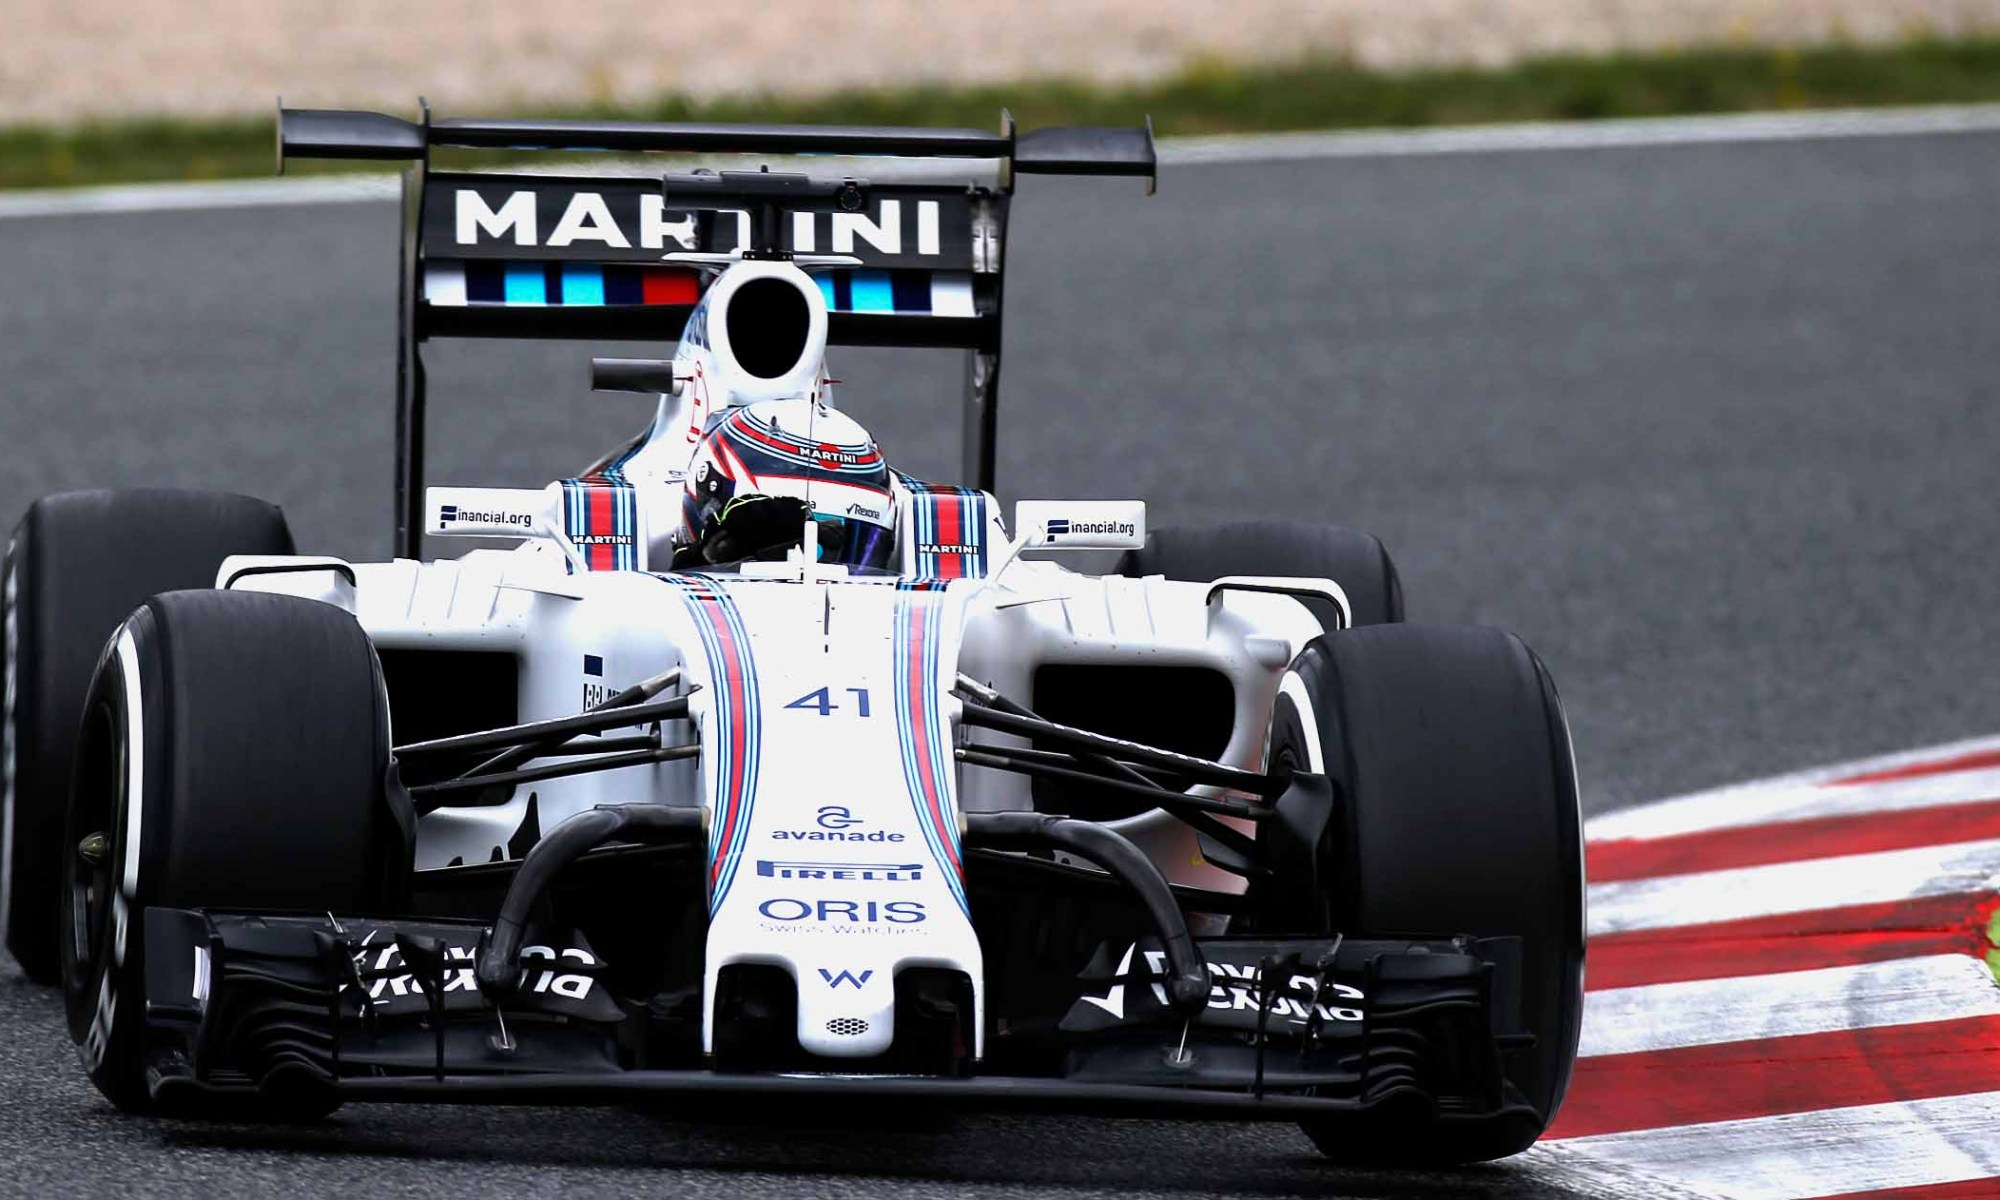 Williams testar radikal vinge